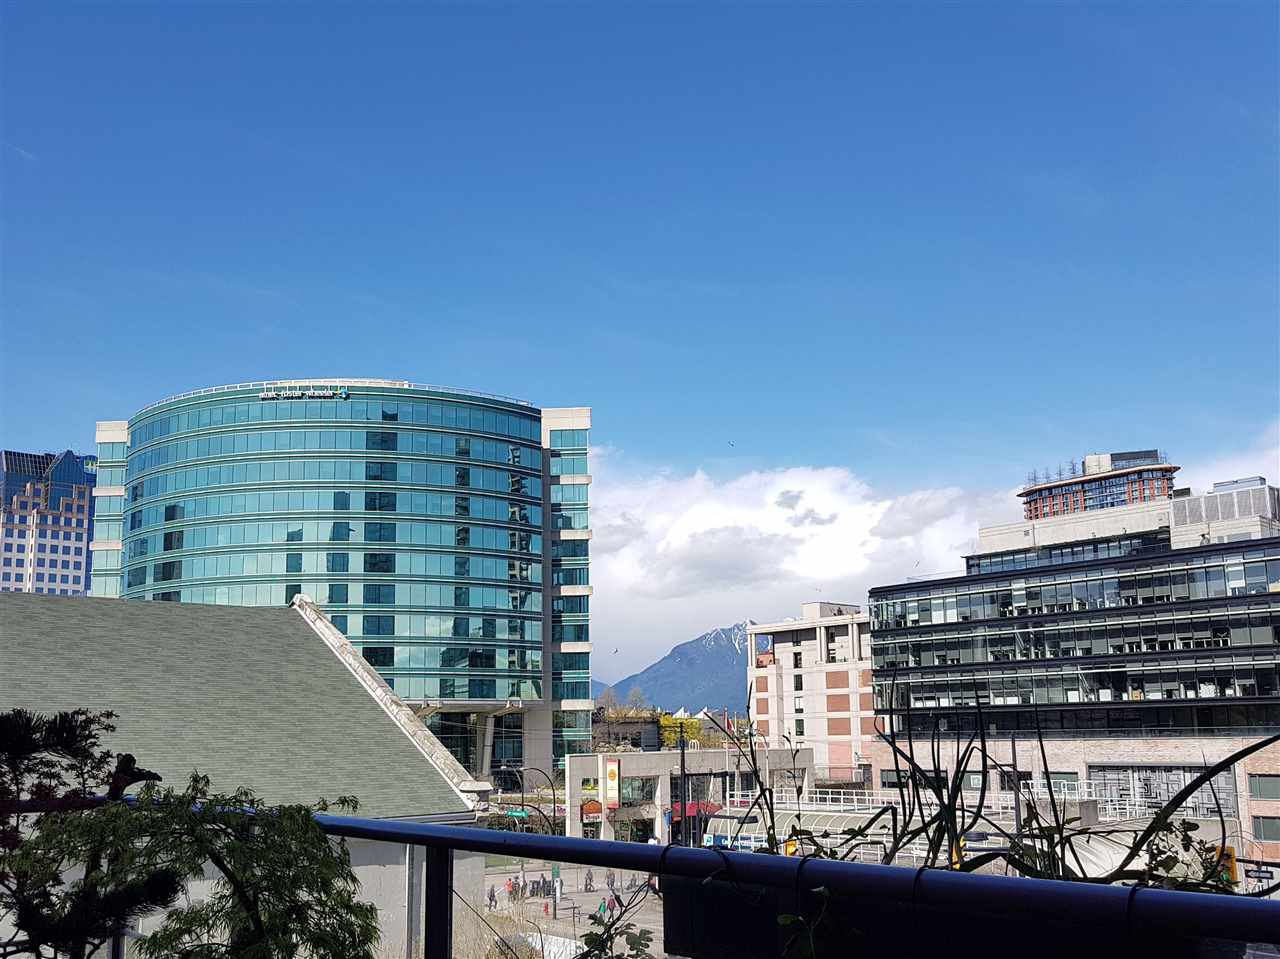 """Main Photo: 505 602 CITADEL Parade in Vancouver: Downtown VW Condo for sale in """"Spectrum IV"""" (Vancouver West)  : MLS®# R2252598"""